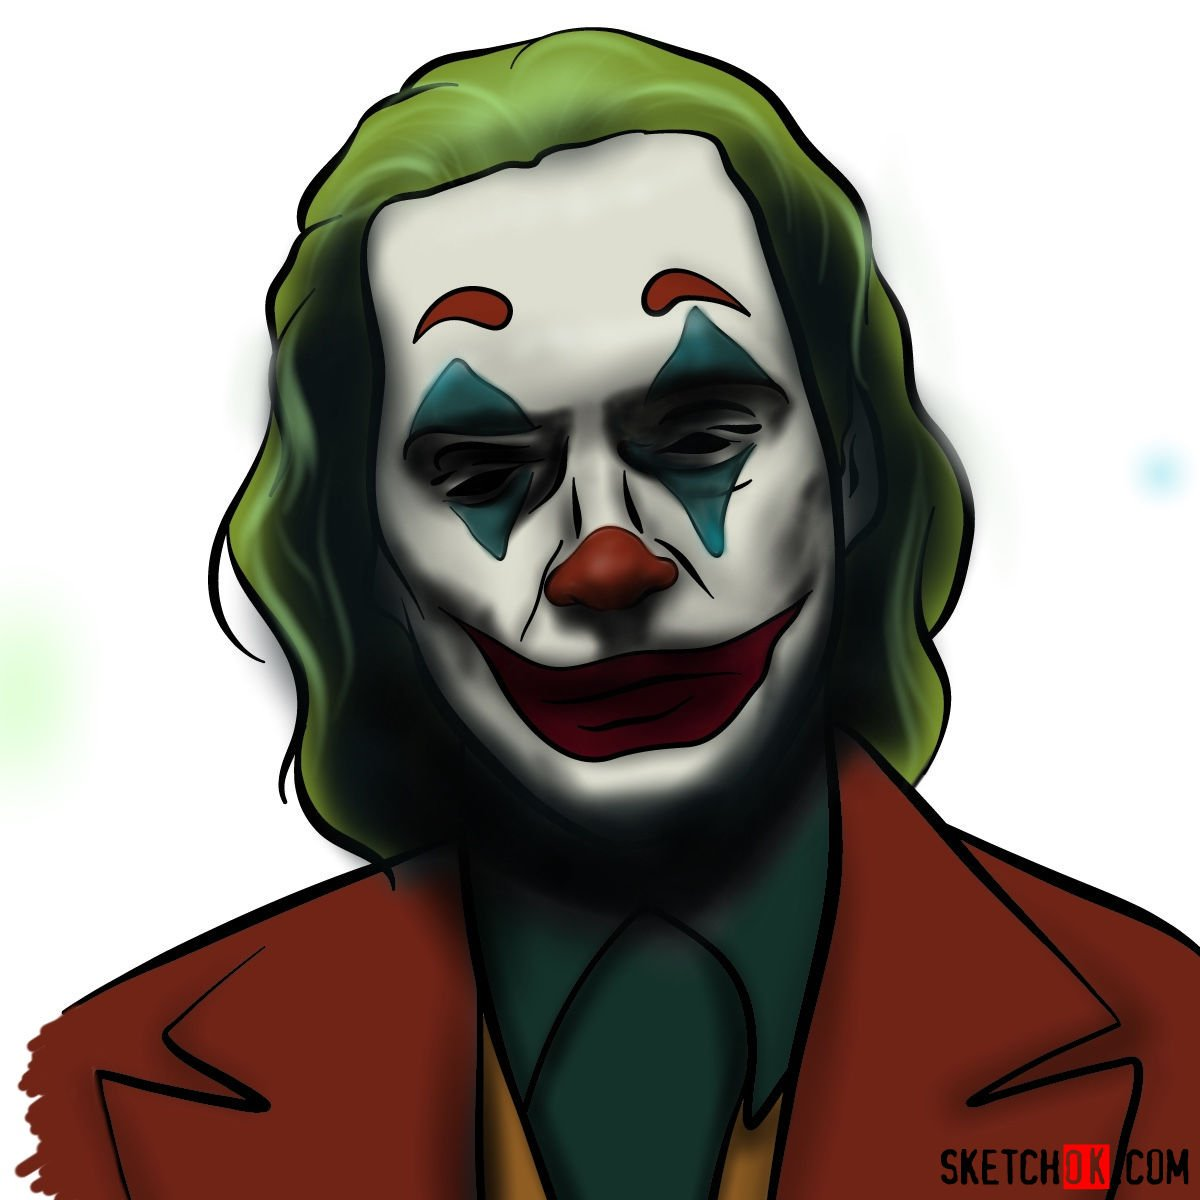 How to draw Joker by Joaquin Phoenix